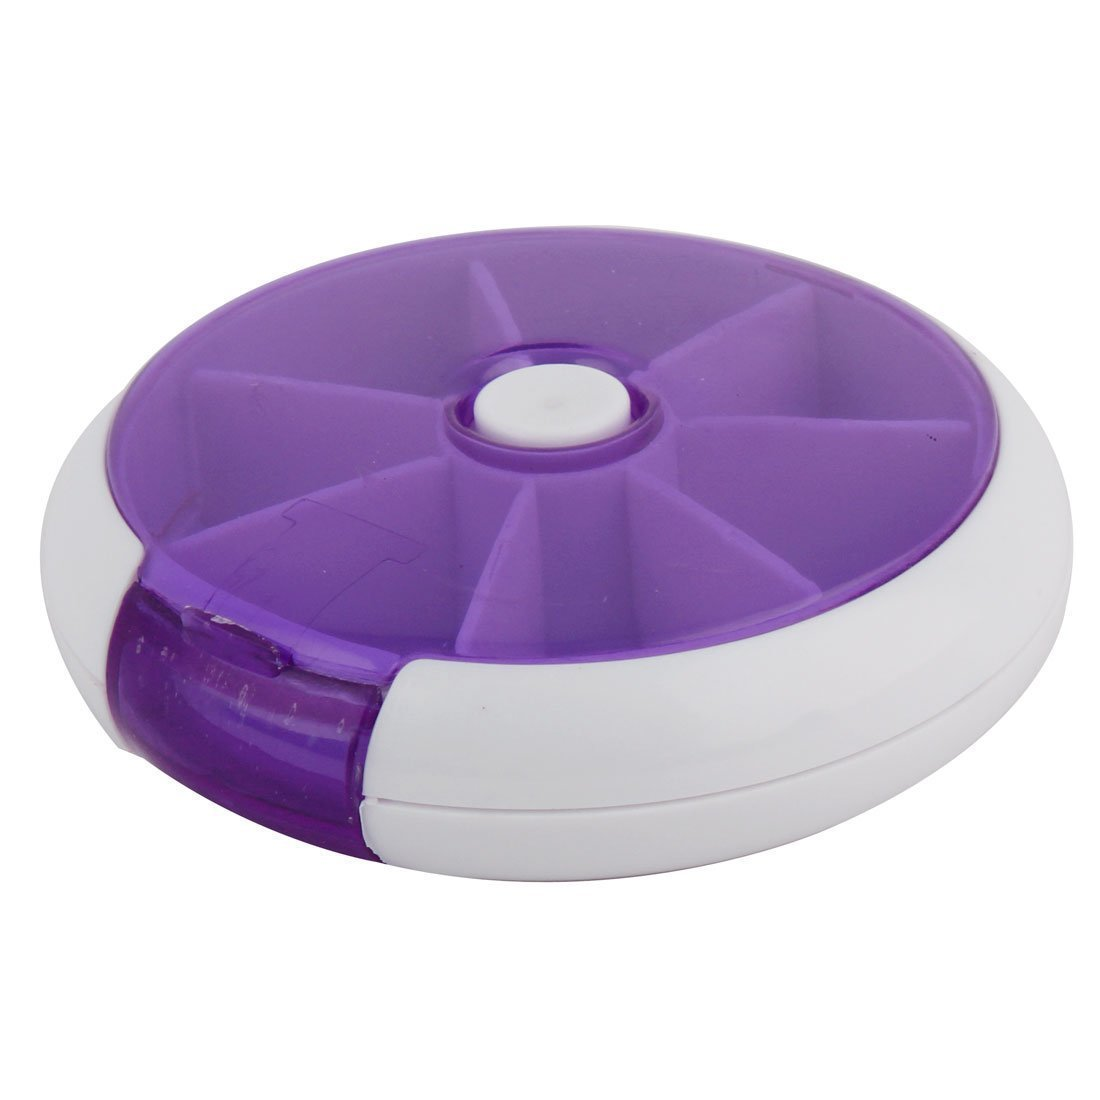 Sky Fish Pill Box 7 Day Round Tray Medicine Box Holder Vitamins Container Pill Organiser Case Pill Storage Dispenser Drug Holder Daily Boxes Compartments Purple